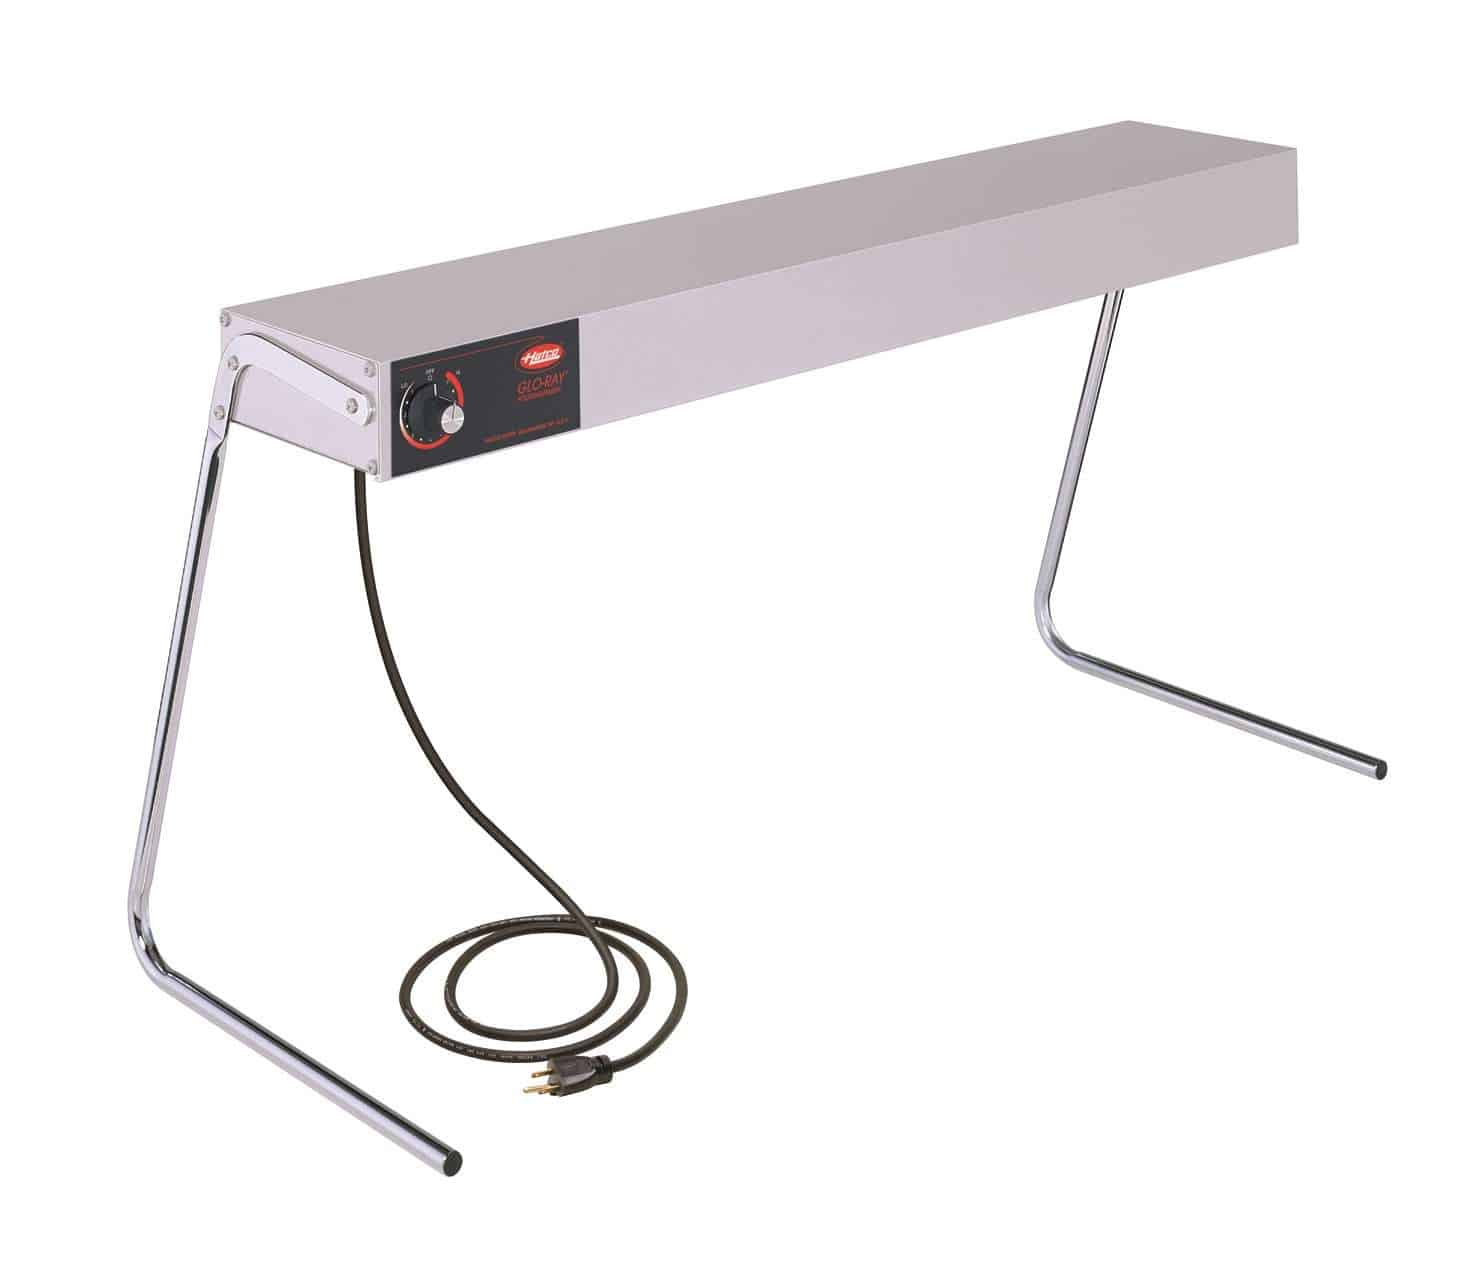 Hatco Grah 36 Glo Ray Infrared Foodwarmer Ckitchen Com